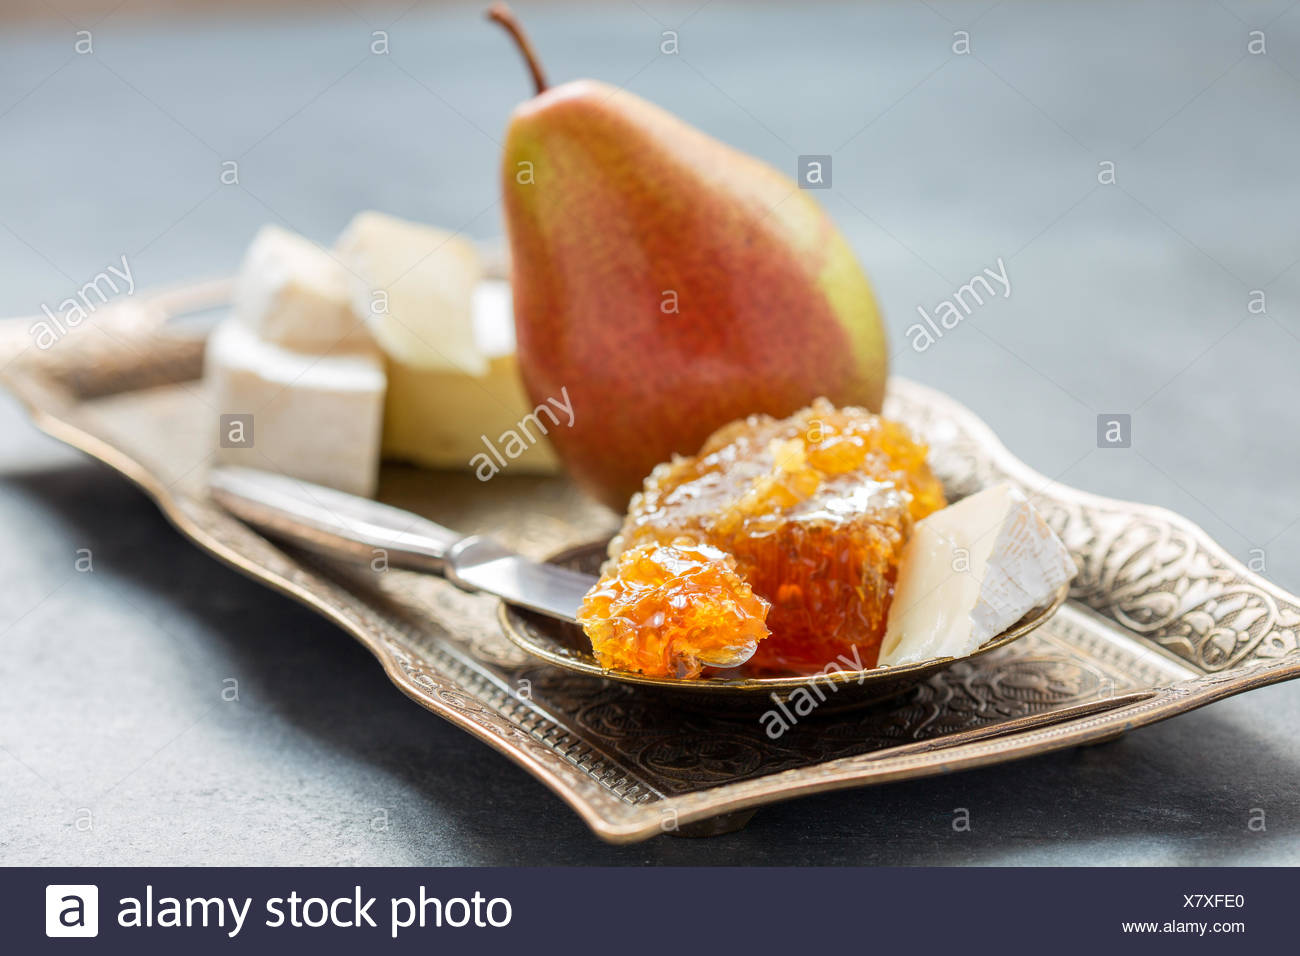 Honey, pear and brie cheese. - Stock Image